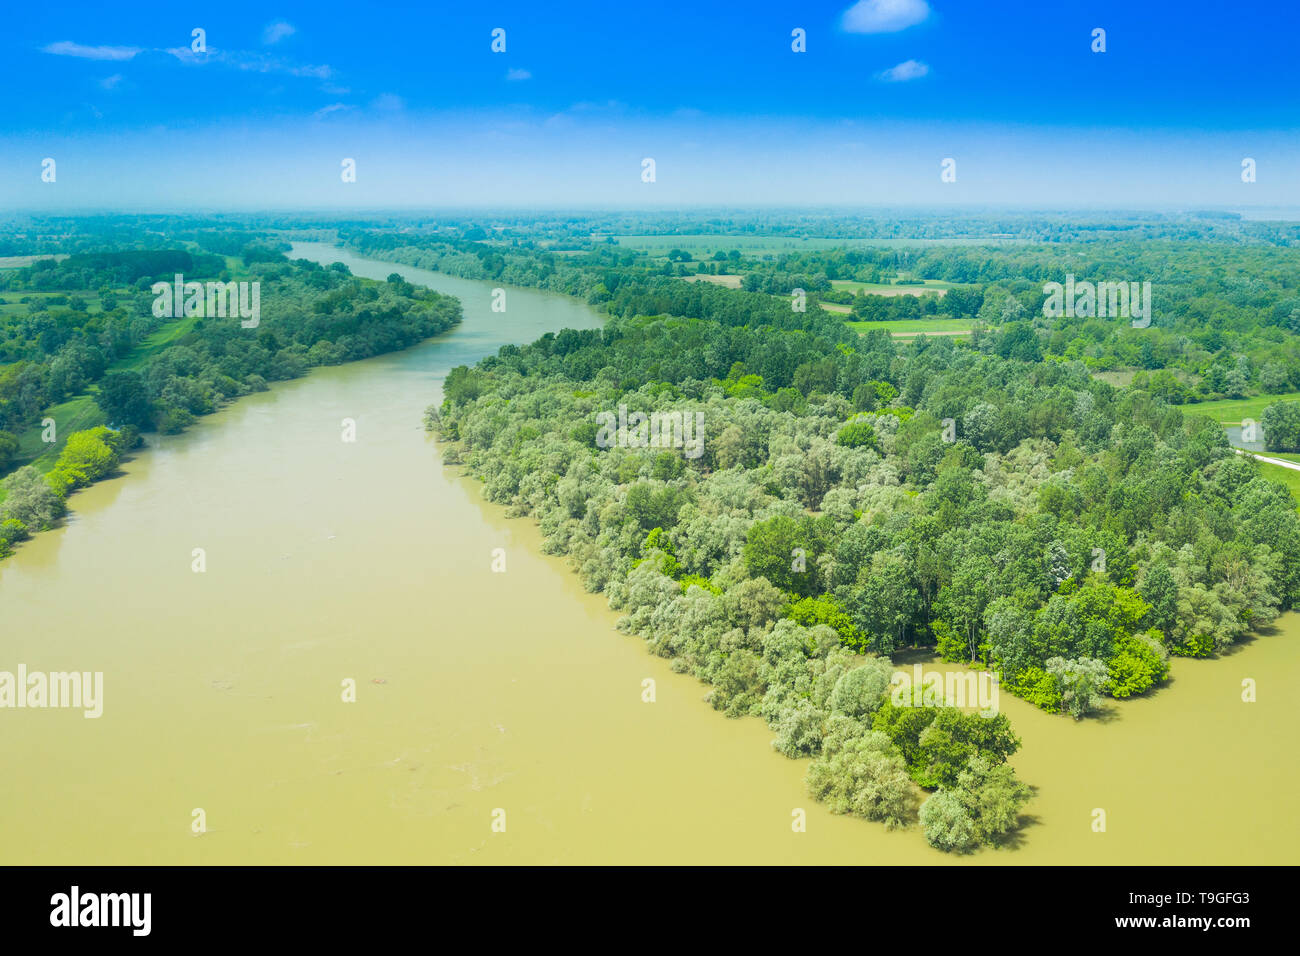 Sava river from air, landscape in nature park Lonjsko polje, Croatia, panoramic view of woods and river floods Stock Photo